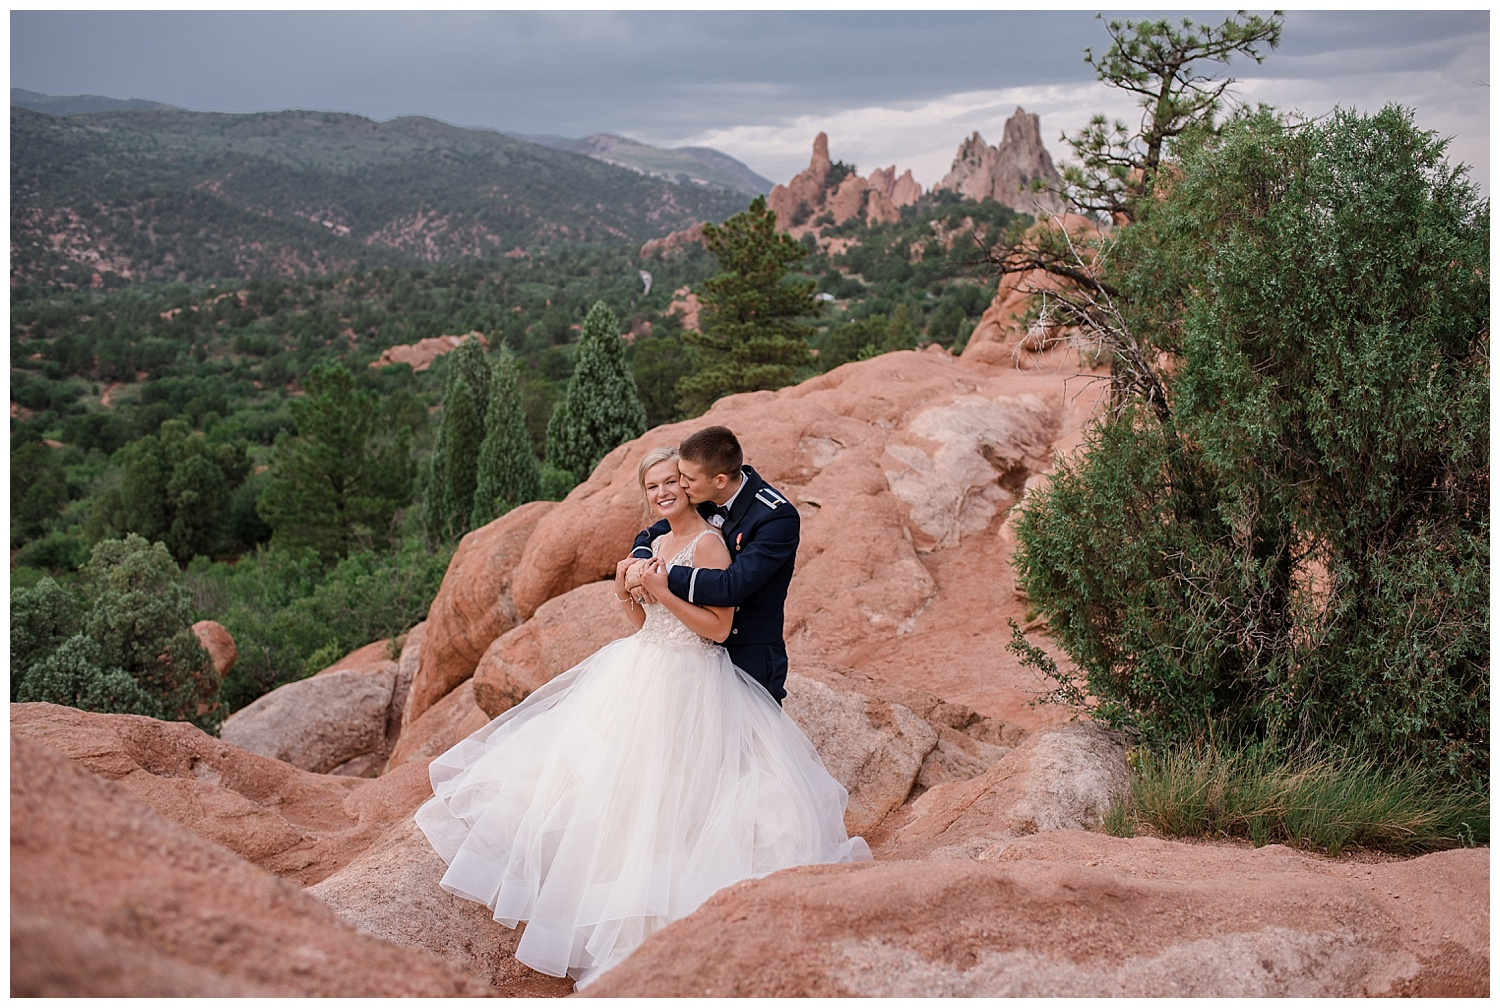 Military Wedding, bride and groom, navy suits, dress blues, Colorado Wedding Photographer, Denver Wedding Photographer, Denver Elopement Photographer, Colorado Elopement Photographer, Rocky Mountain Wedding Photographer, Downtown Denver Photographer